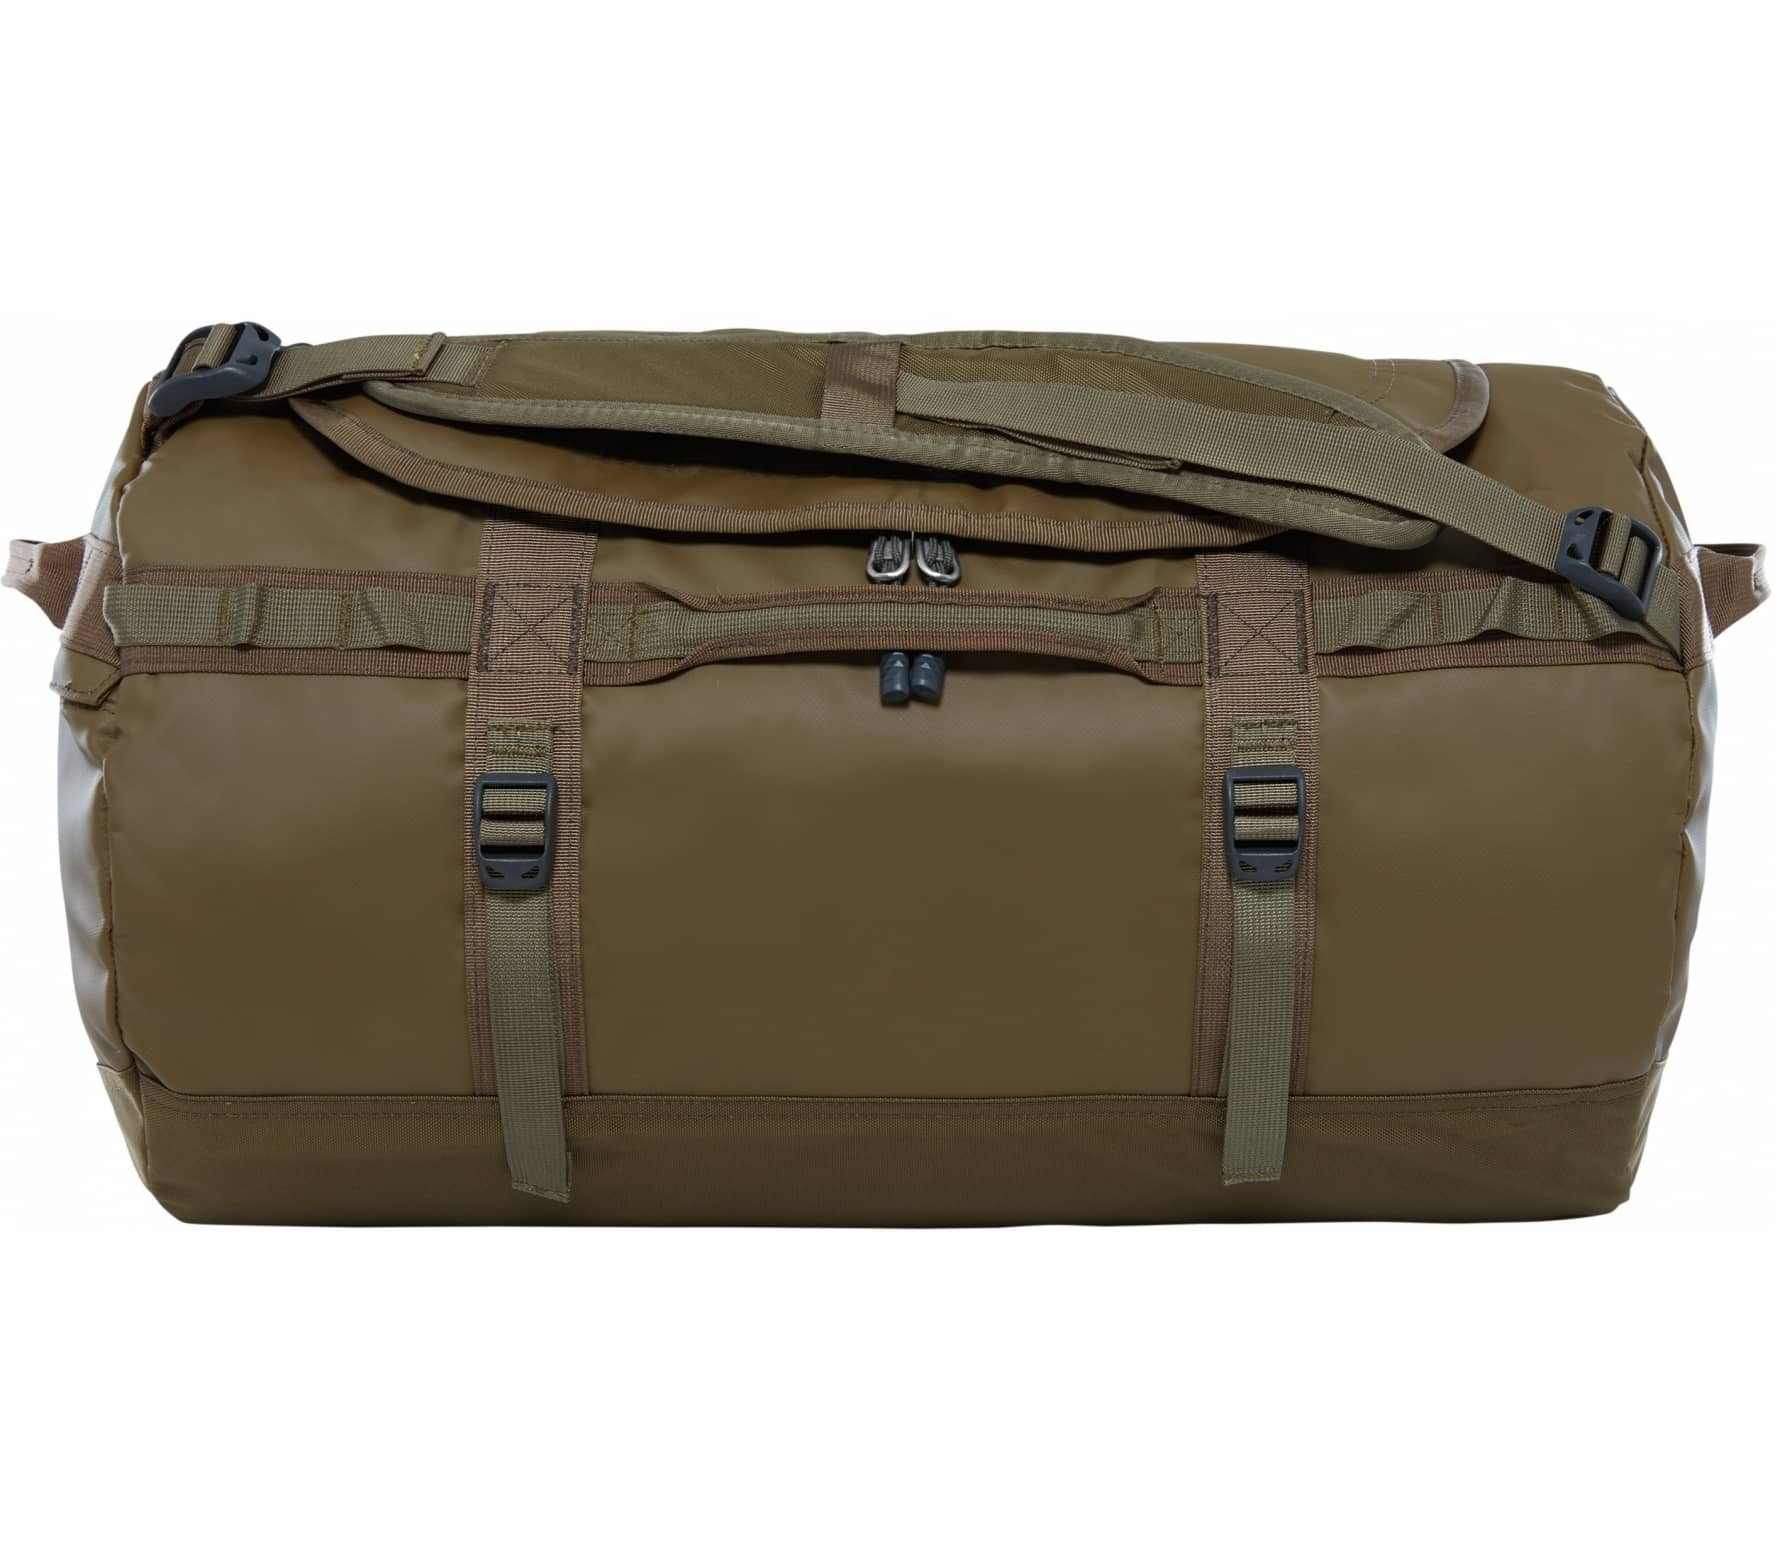 The North Face - Base Camp S duffel bag (dark green/olive green) thumbnail